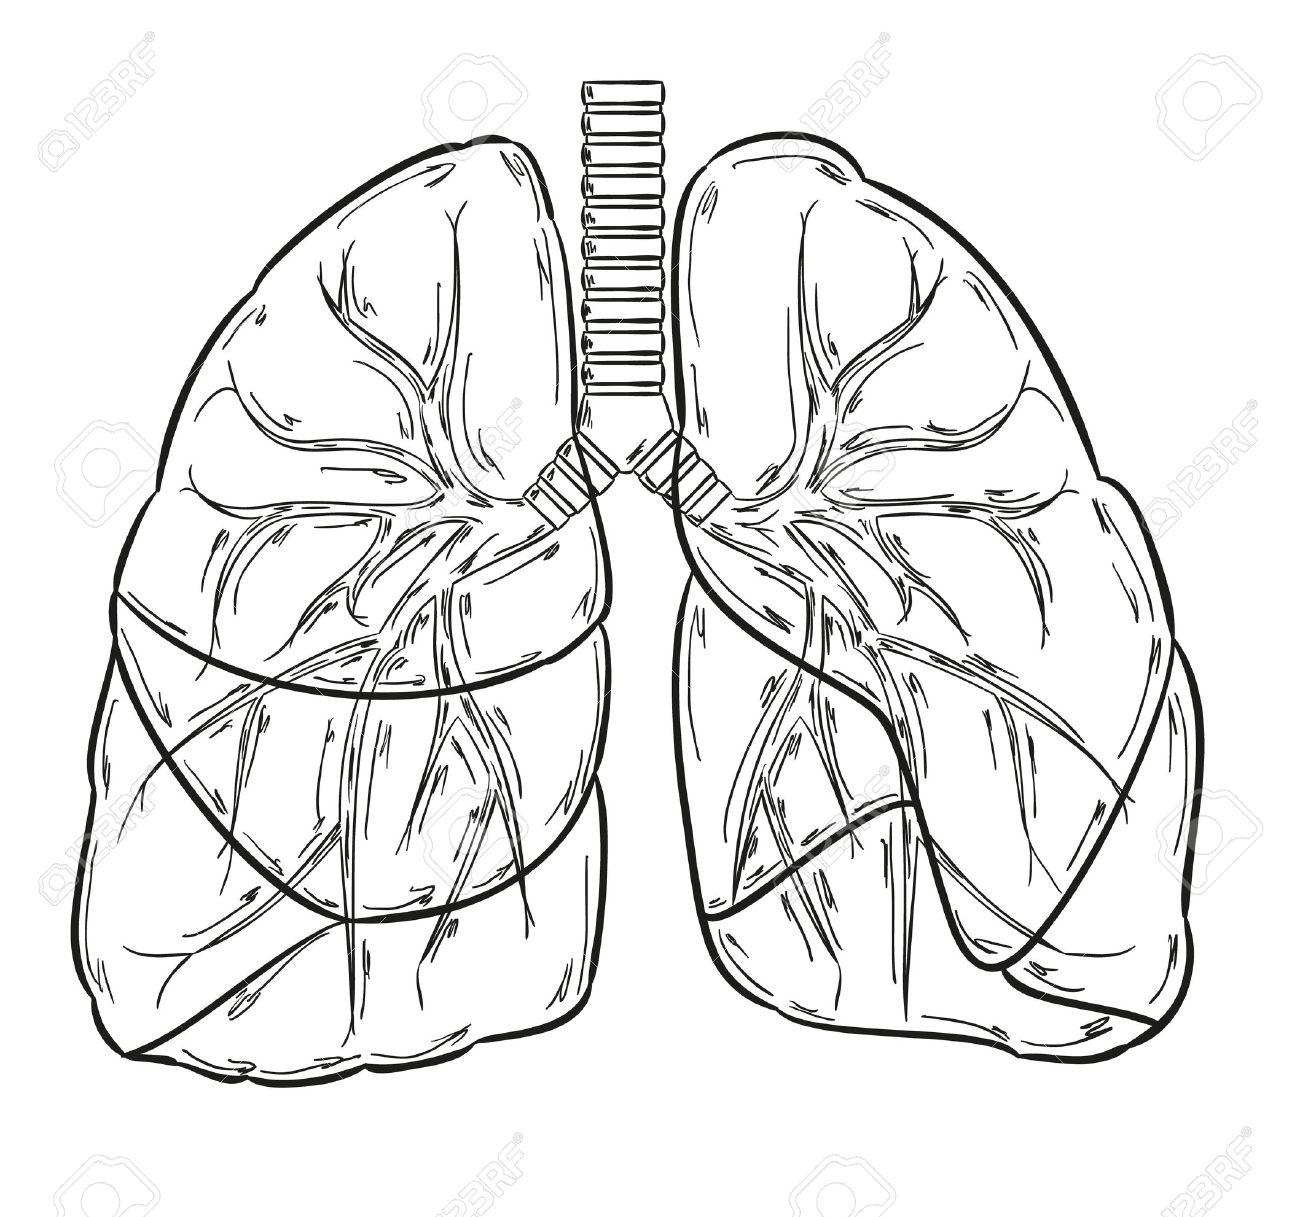 Lung Cancer Drawing At Getdrawings